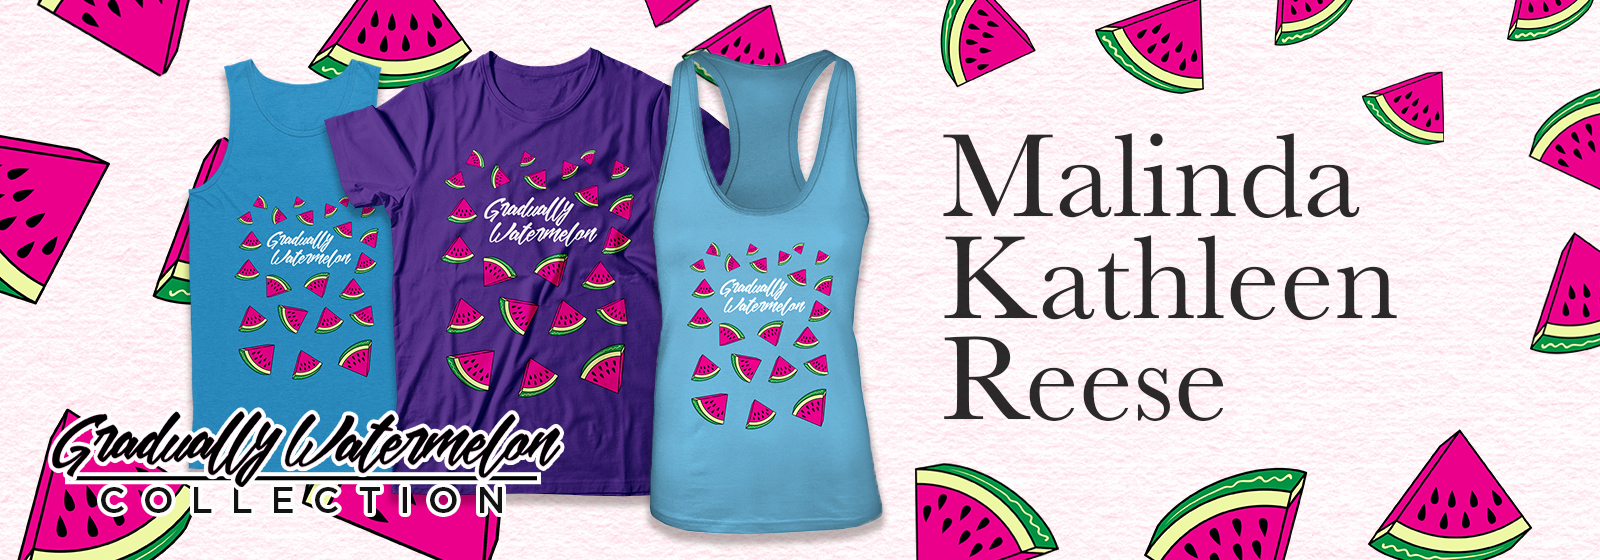 Malinda Kathleen Reese Official Store Store